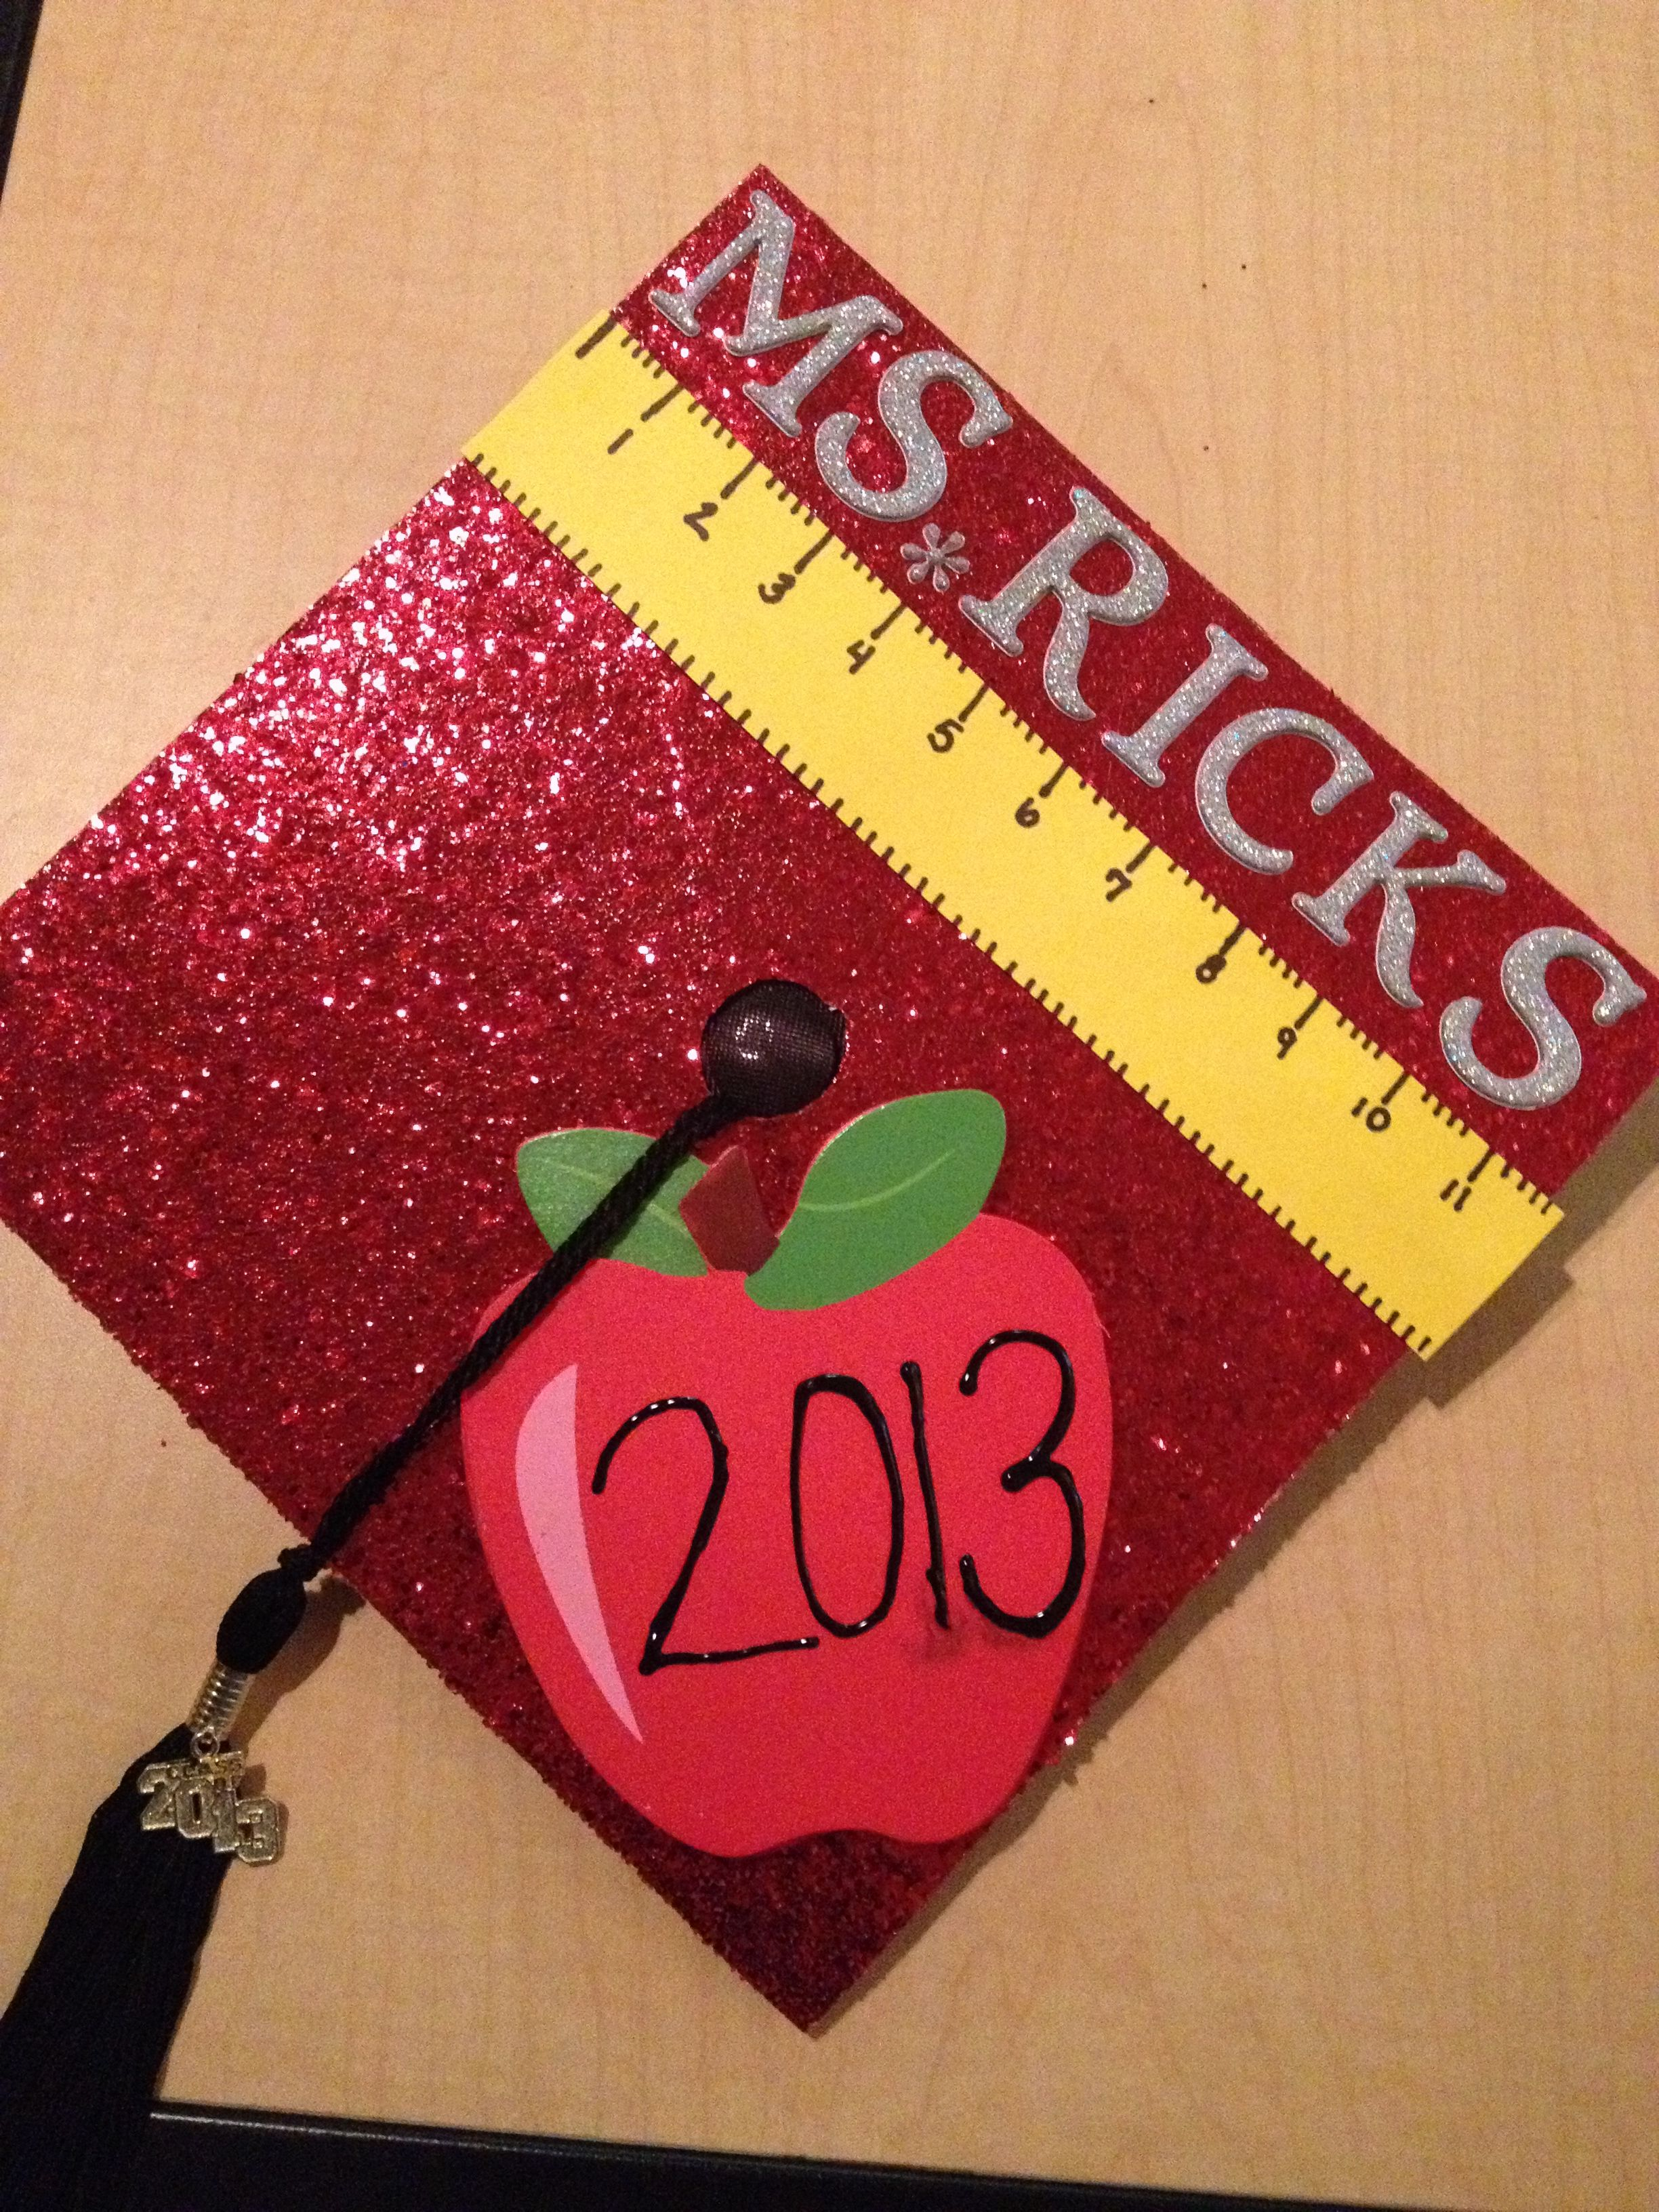 Decorating graduation cap ideas for teachers - But I Want It To Say Thanks Mom And Dad In The Apple Teacher Graduation Capgraduation